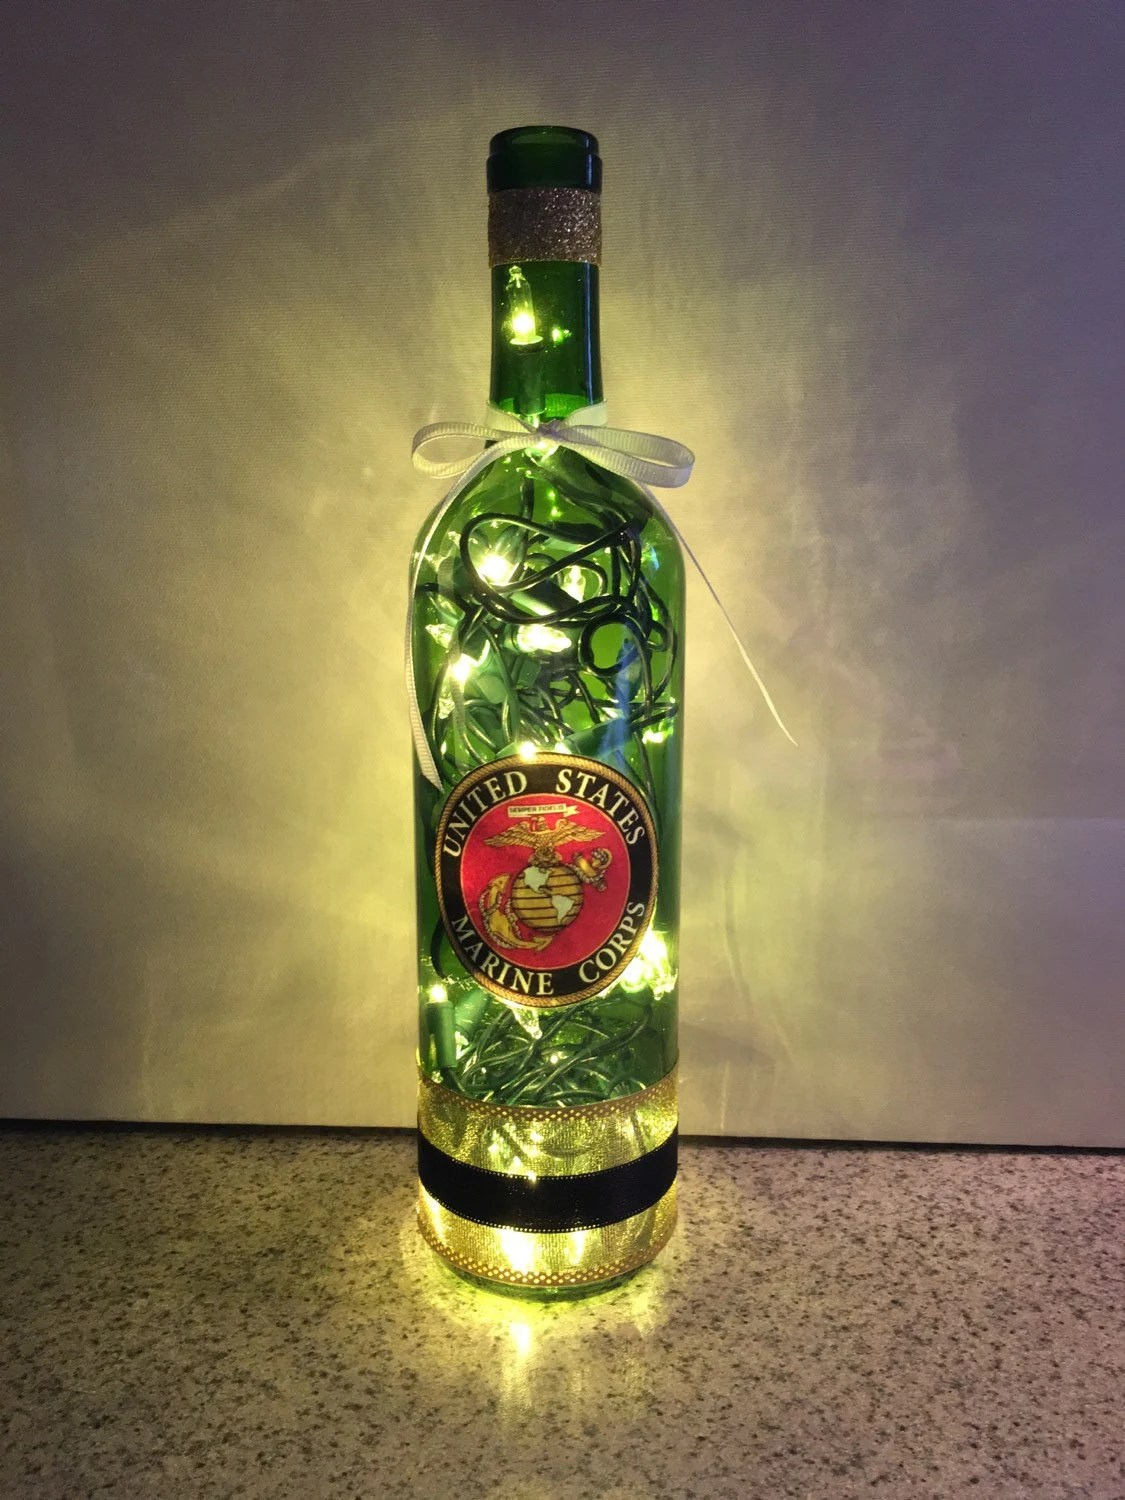 United States Marines Wine Bottle Lamp USMC Bottle Lamp Gift